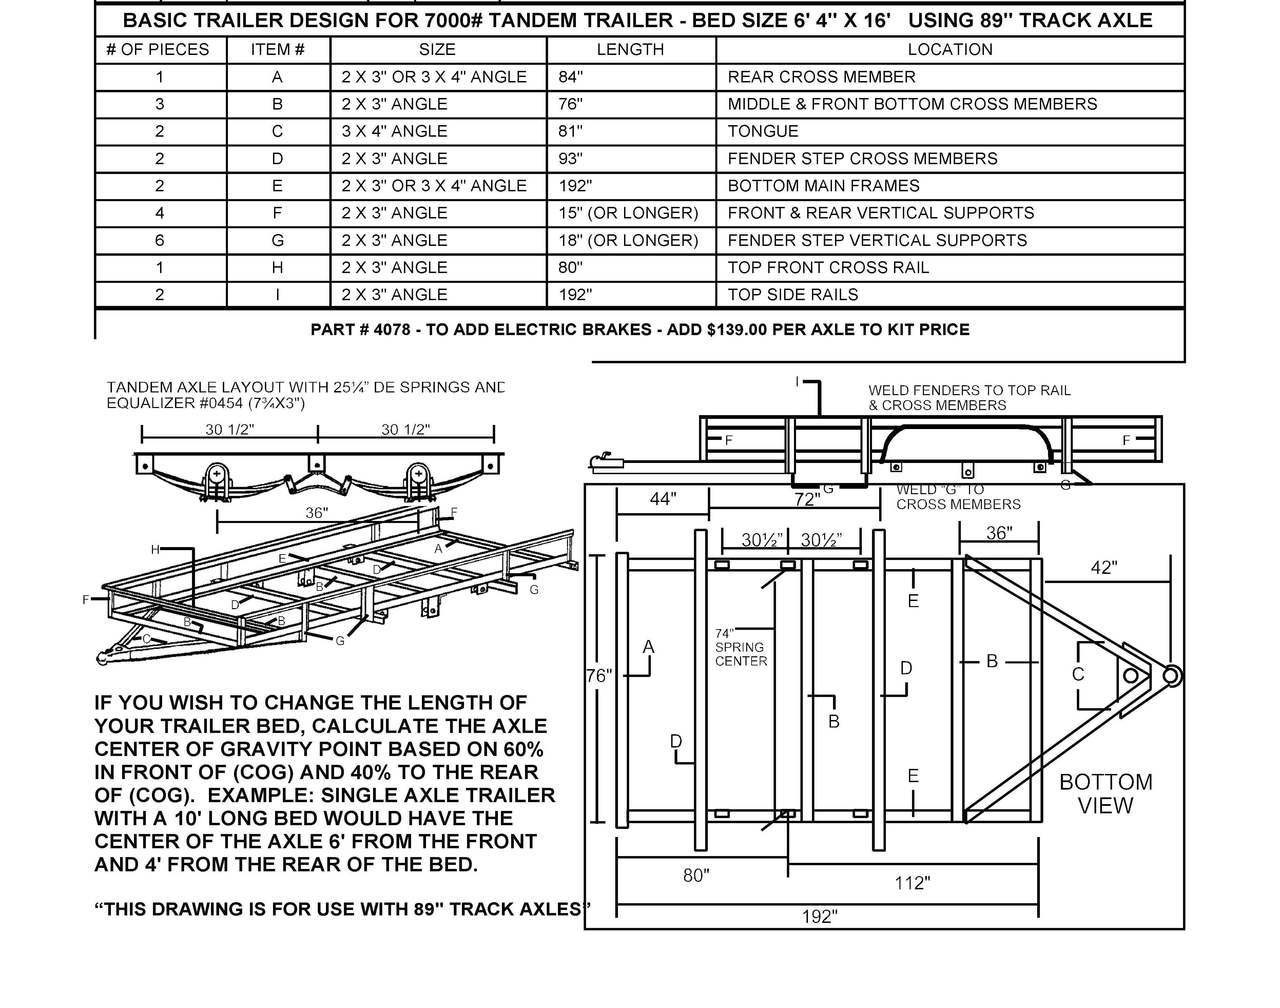 Build Your Own Utility Trailer With Champion Trailers Complete Tandem Axle Trailer Kit